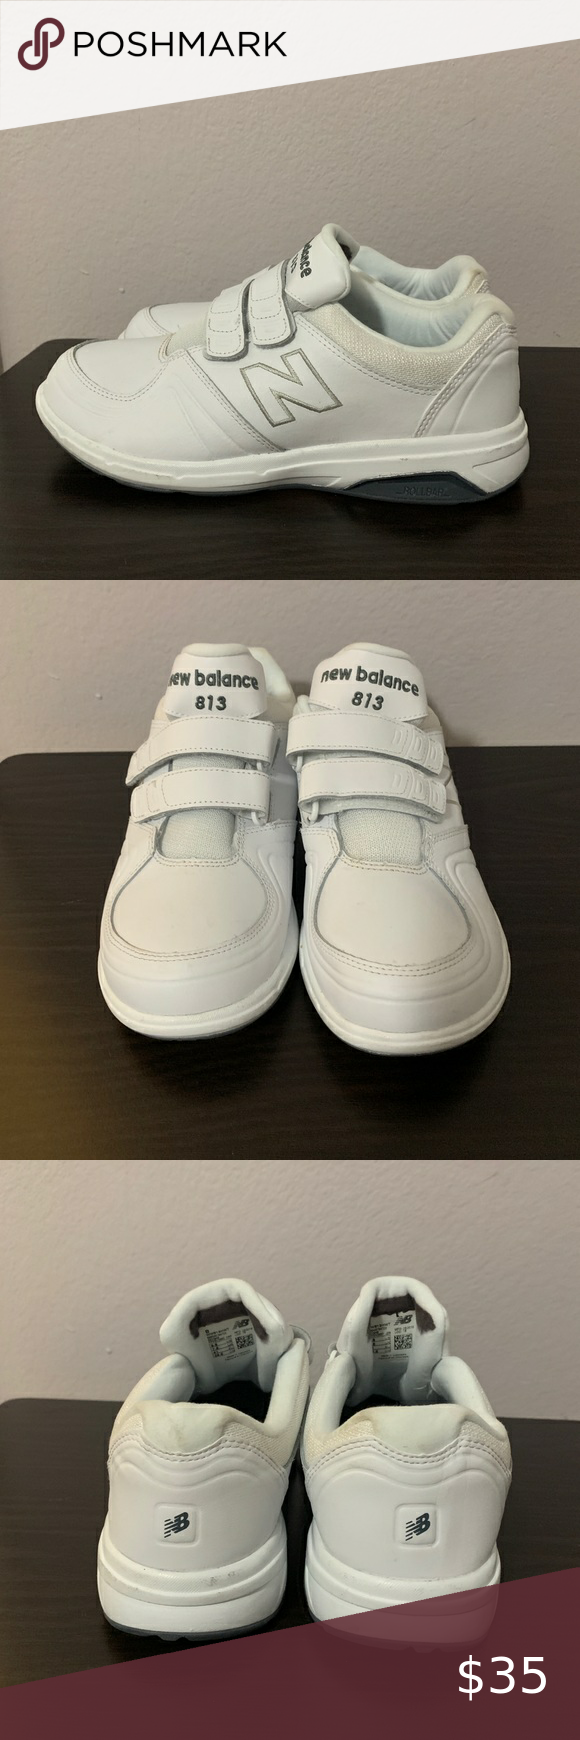 White Sneakers Size 9.5 Wide